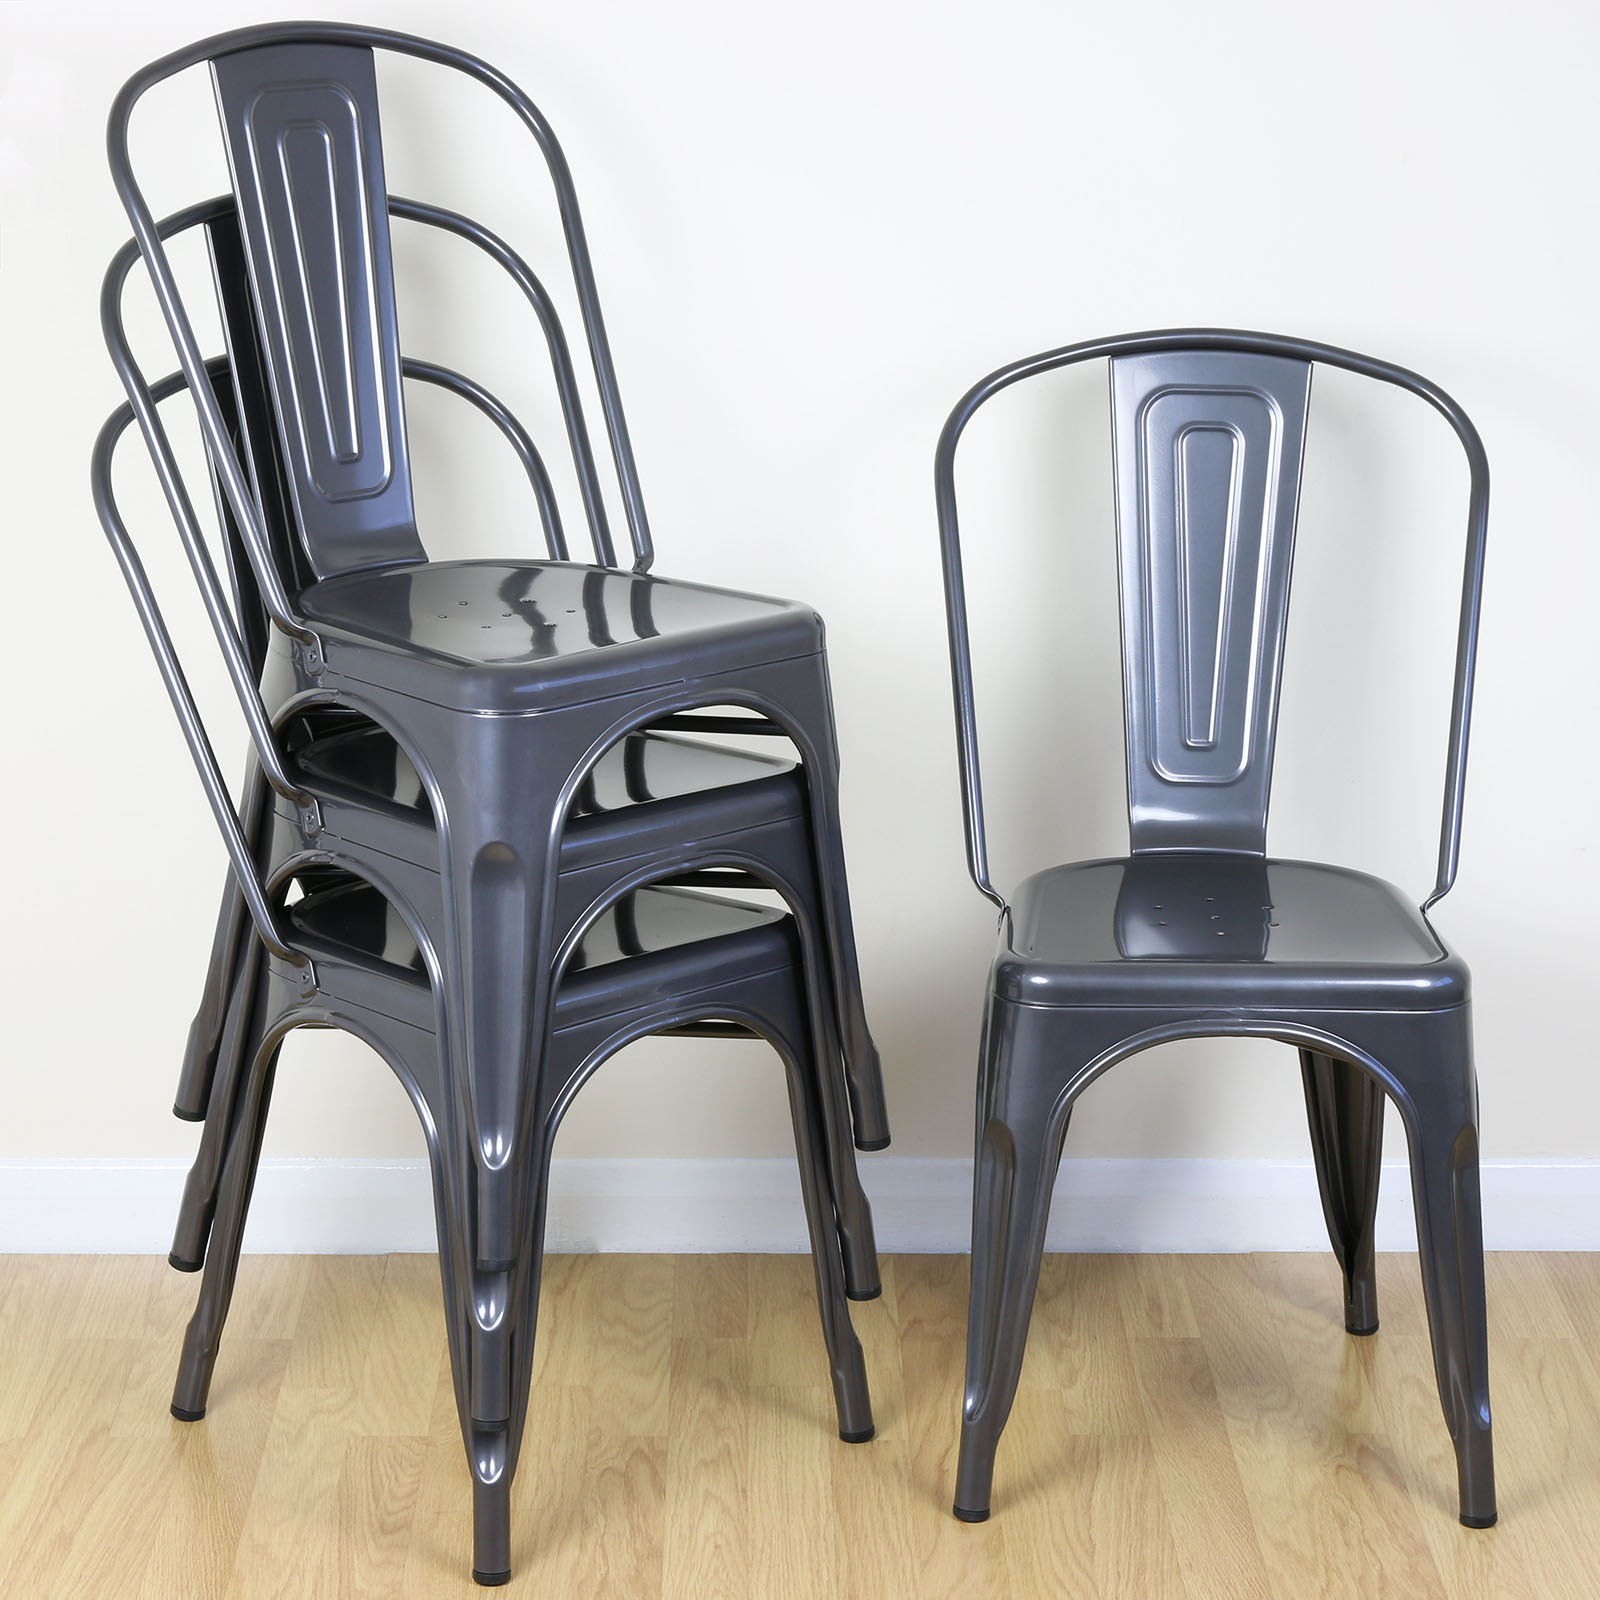 cafe chairs metal chair antique styles set of 4 gunmetal industrial dining kitchen